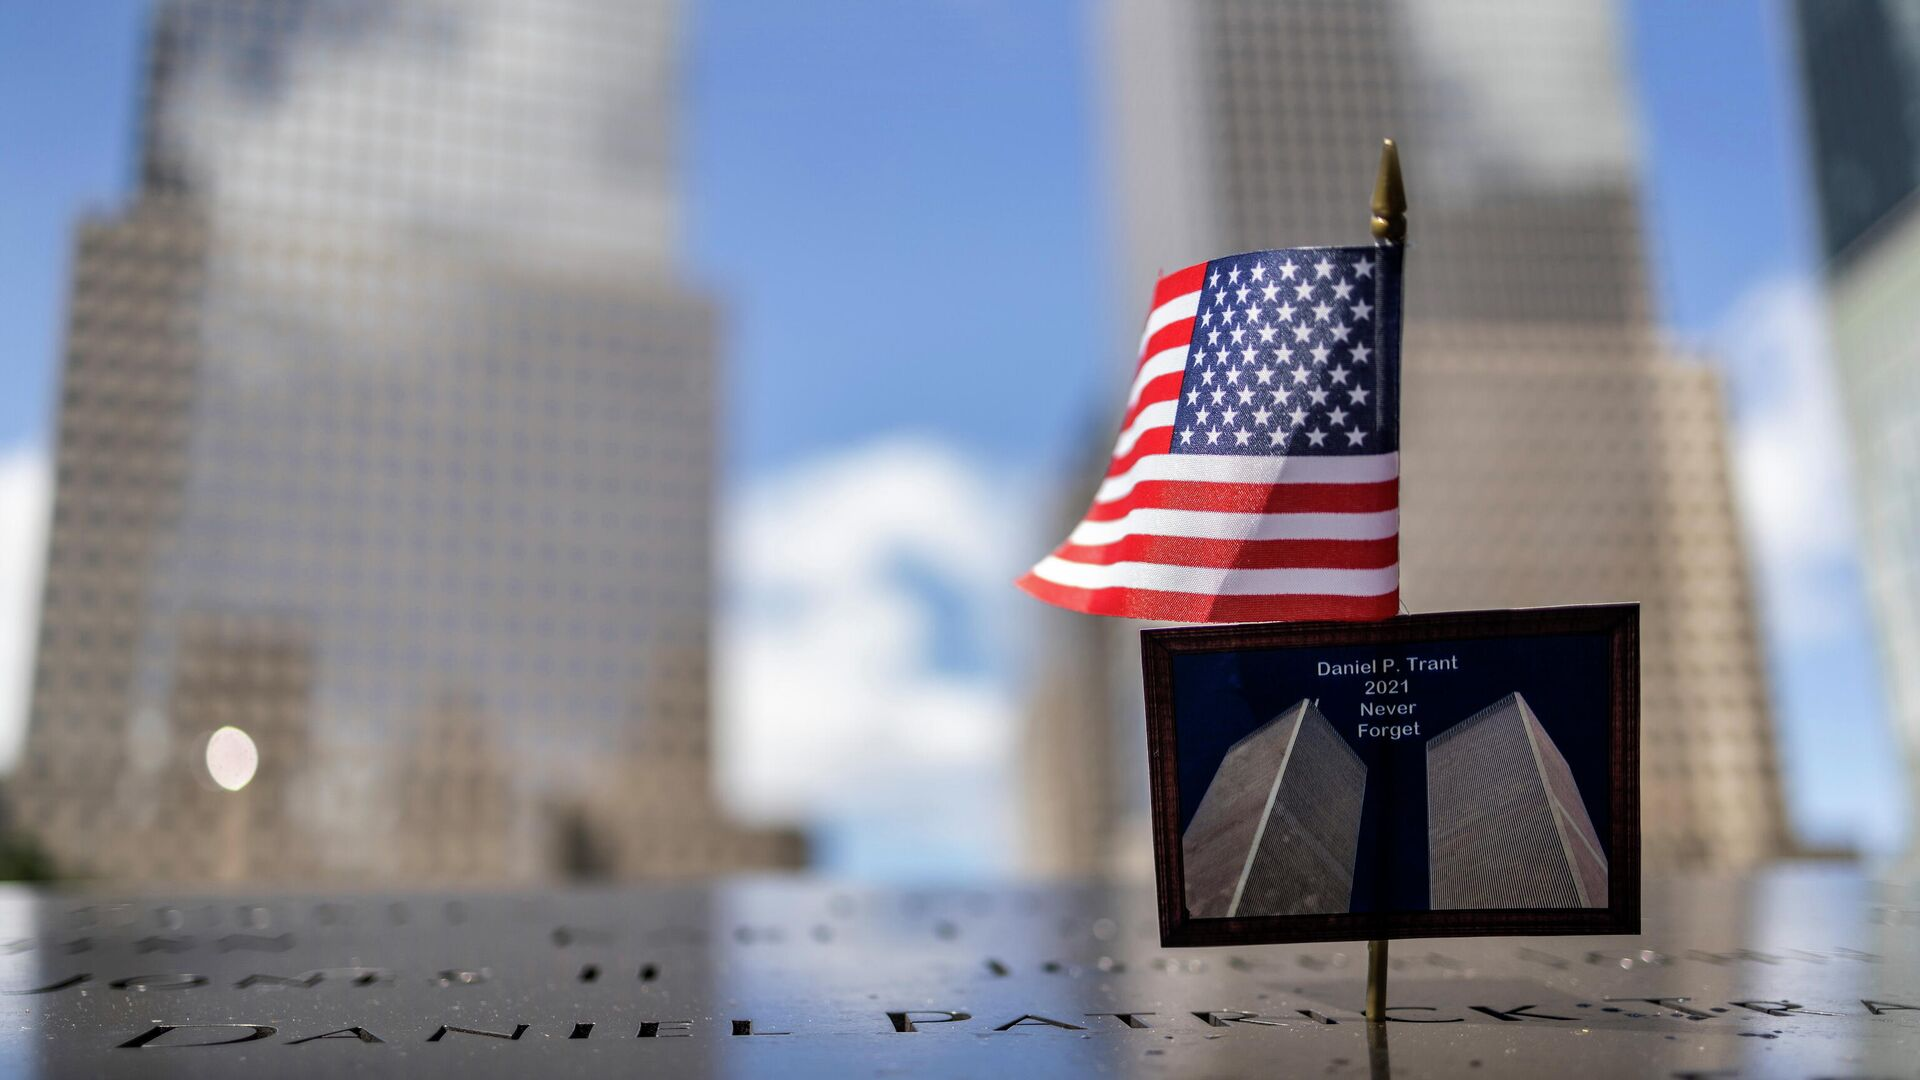 A postcard of the Twin Towers is seen at the 9/11 Memorial ahead of the 20th anniversary of the September 11 attacks in Manhattan, New York City, U.S., September 10, 2021. - Sputnik International, 1920, 11.09.2021